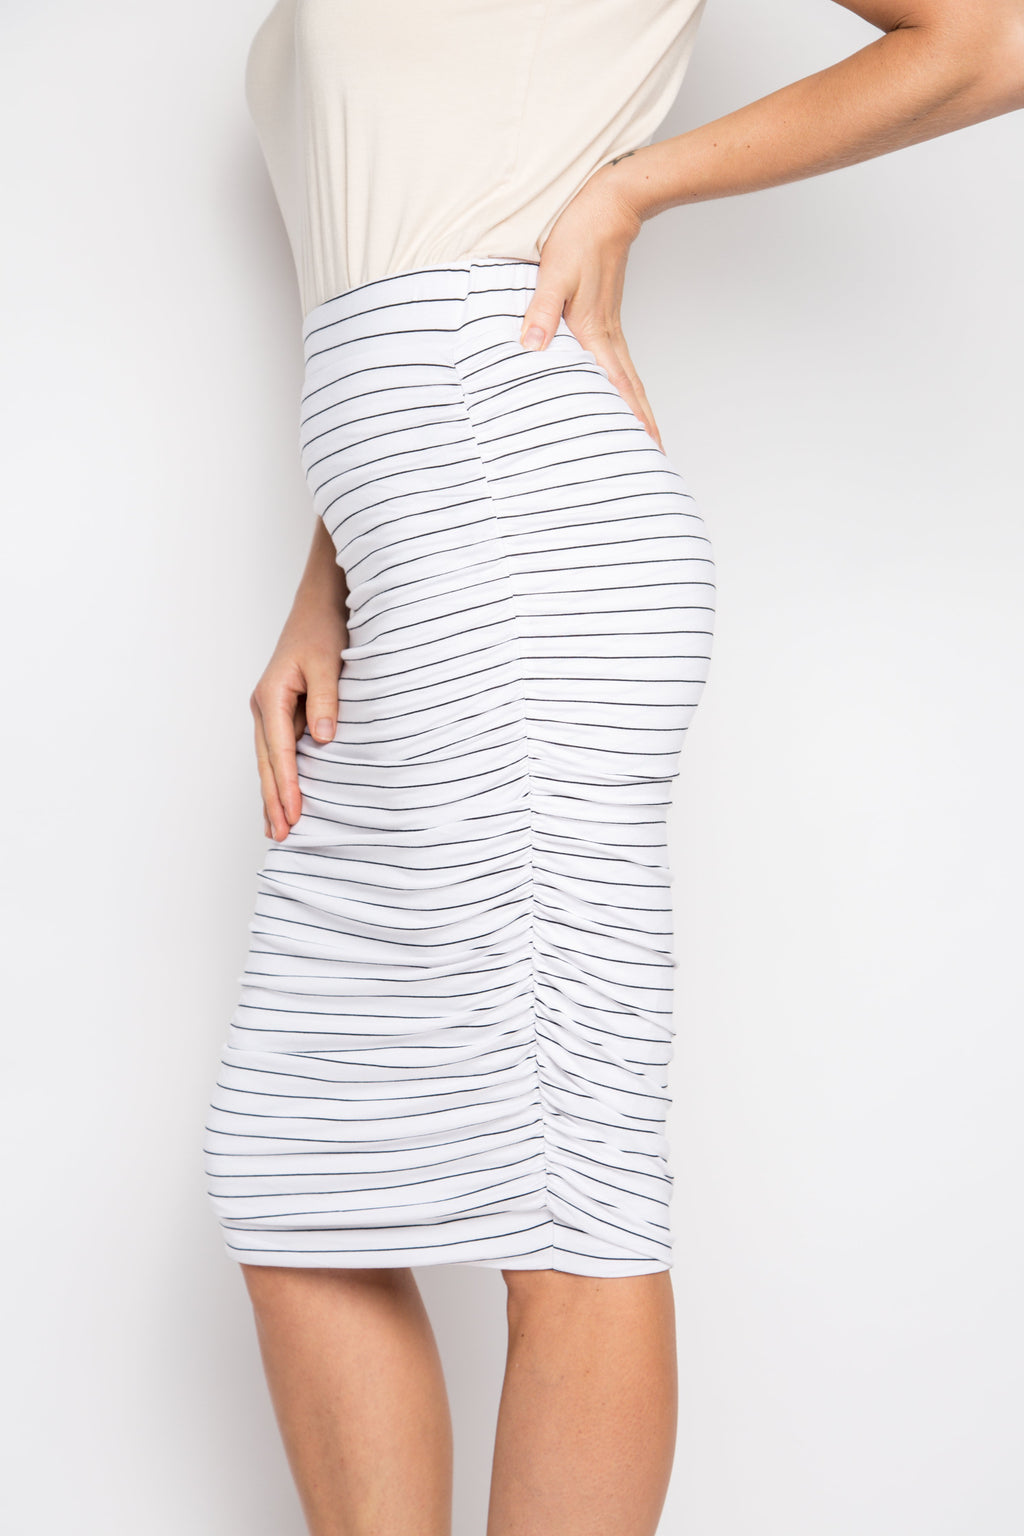 Ruche Skirt in White/Black Pinstripe